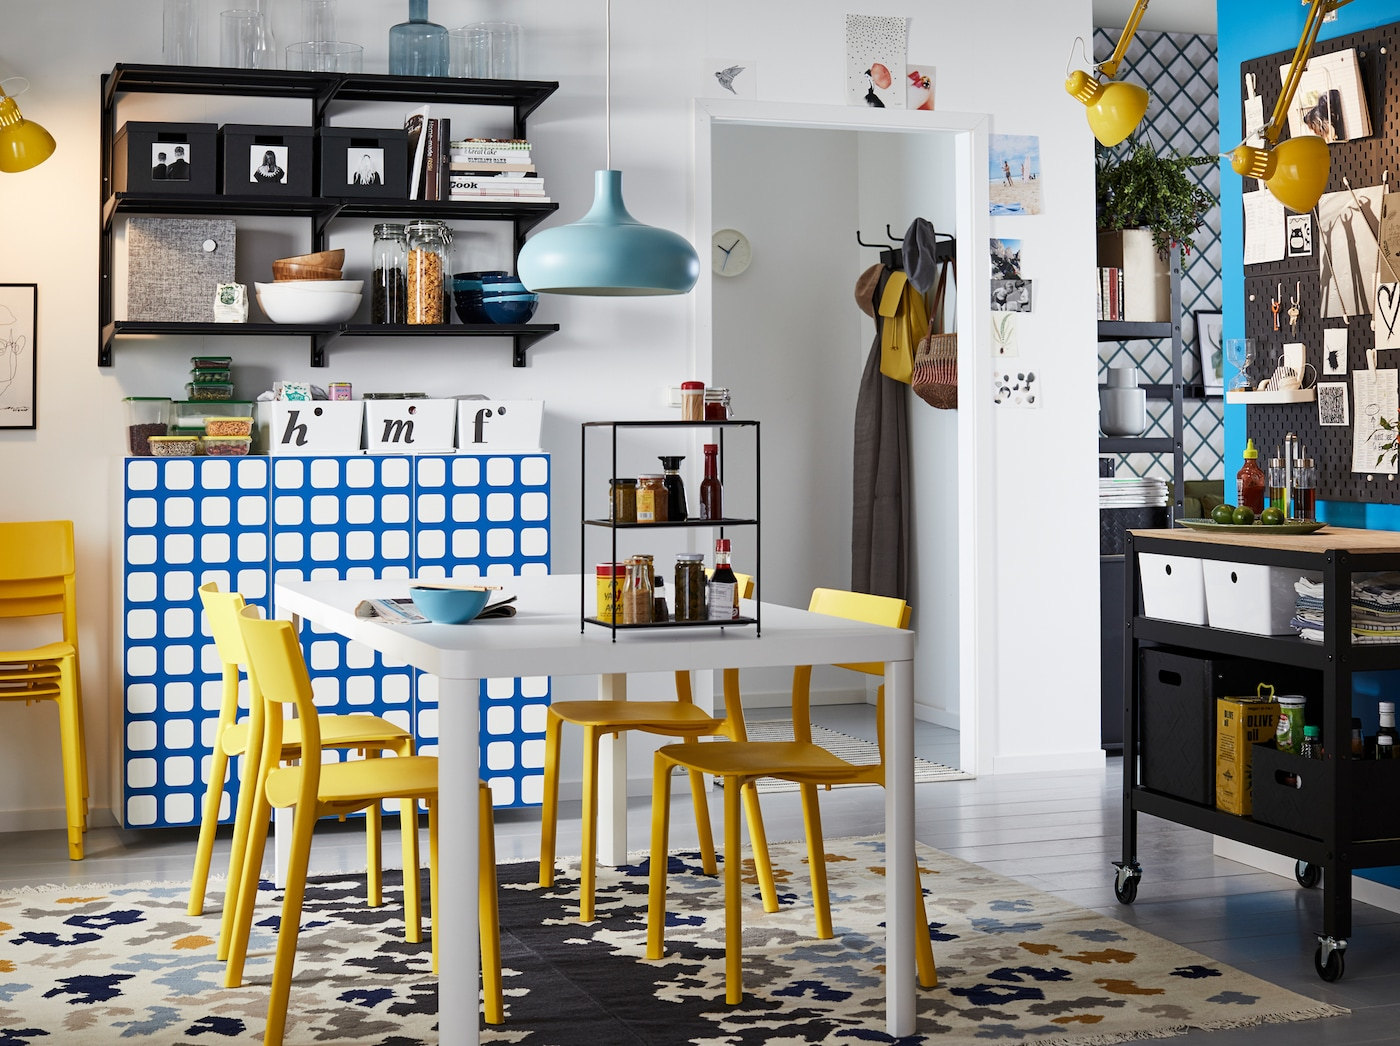 Create your own shared space dining room with lightweight TINGBY white dining table, JANINGE yellow chairs and open pantry with ALGOT shelves for easy cleanup and access to tableware.